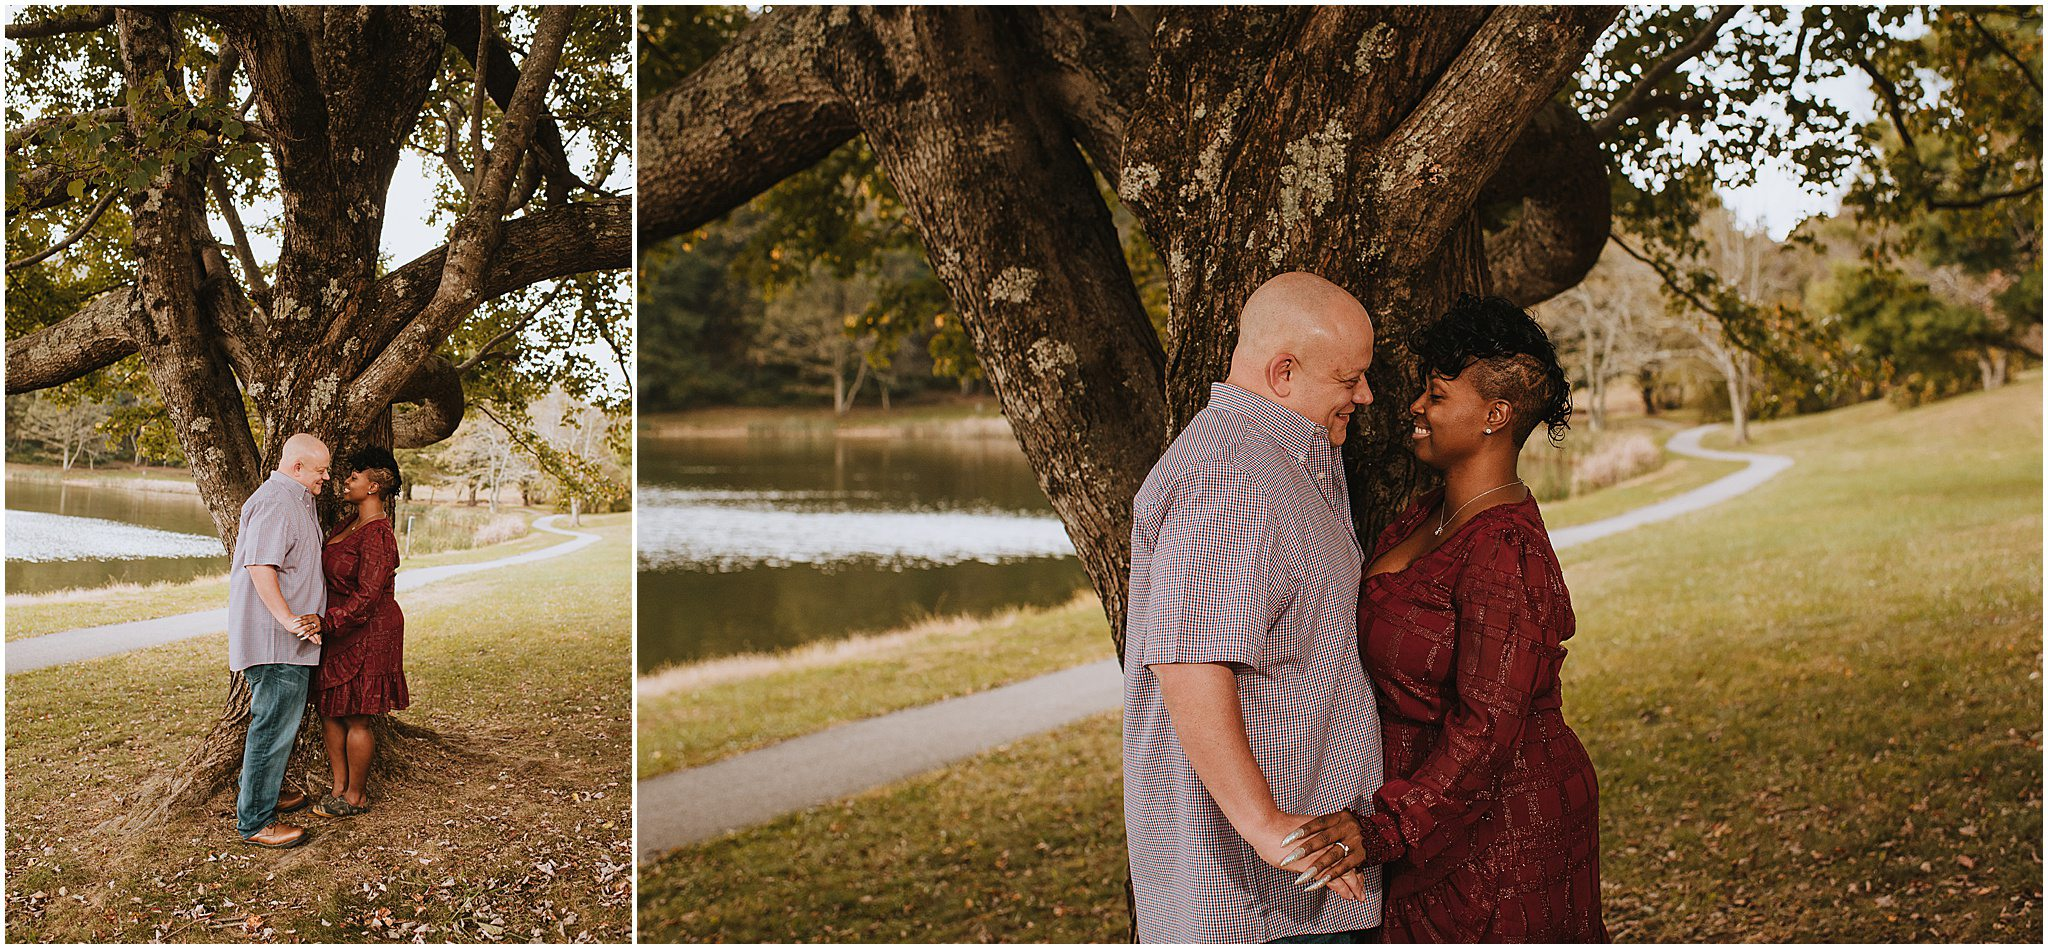 Maria & Brian Engagement session Peaks of Otter Lodge Bedford VA 60